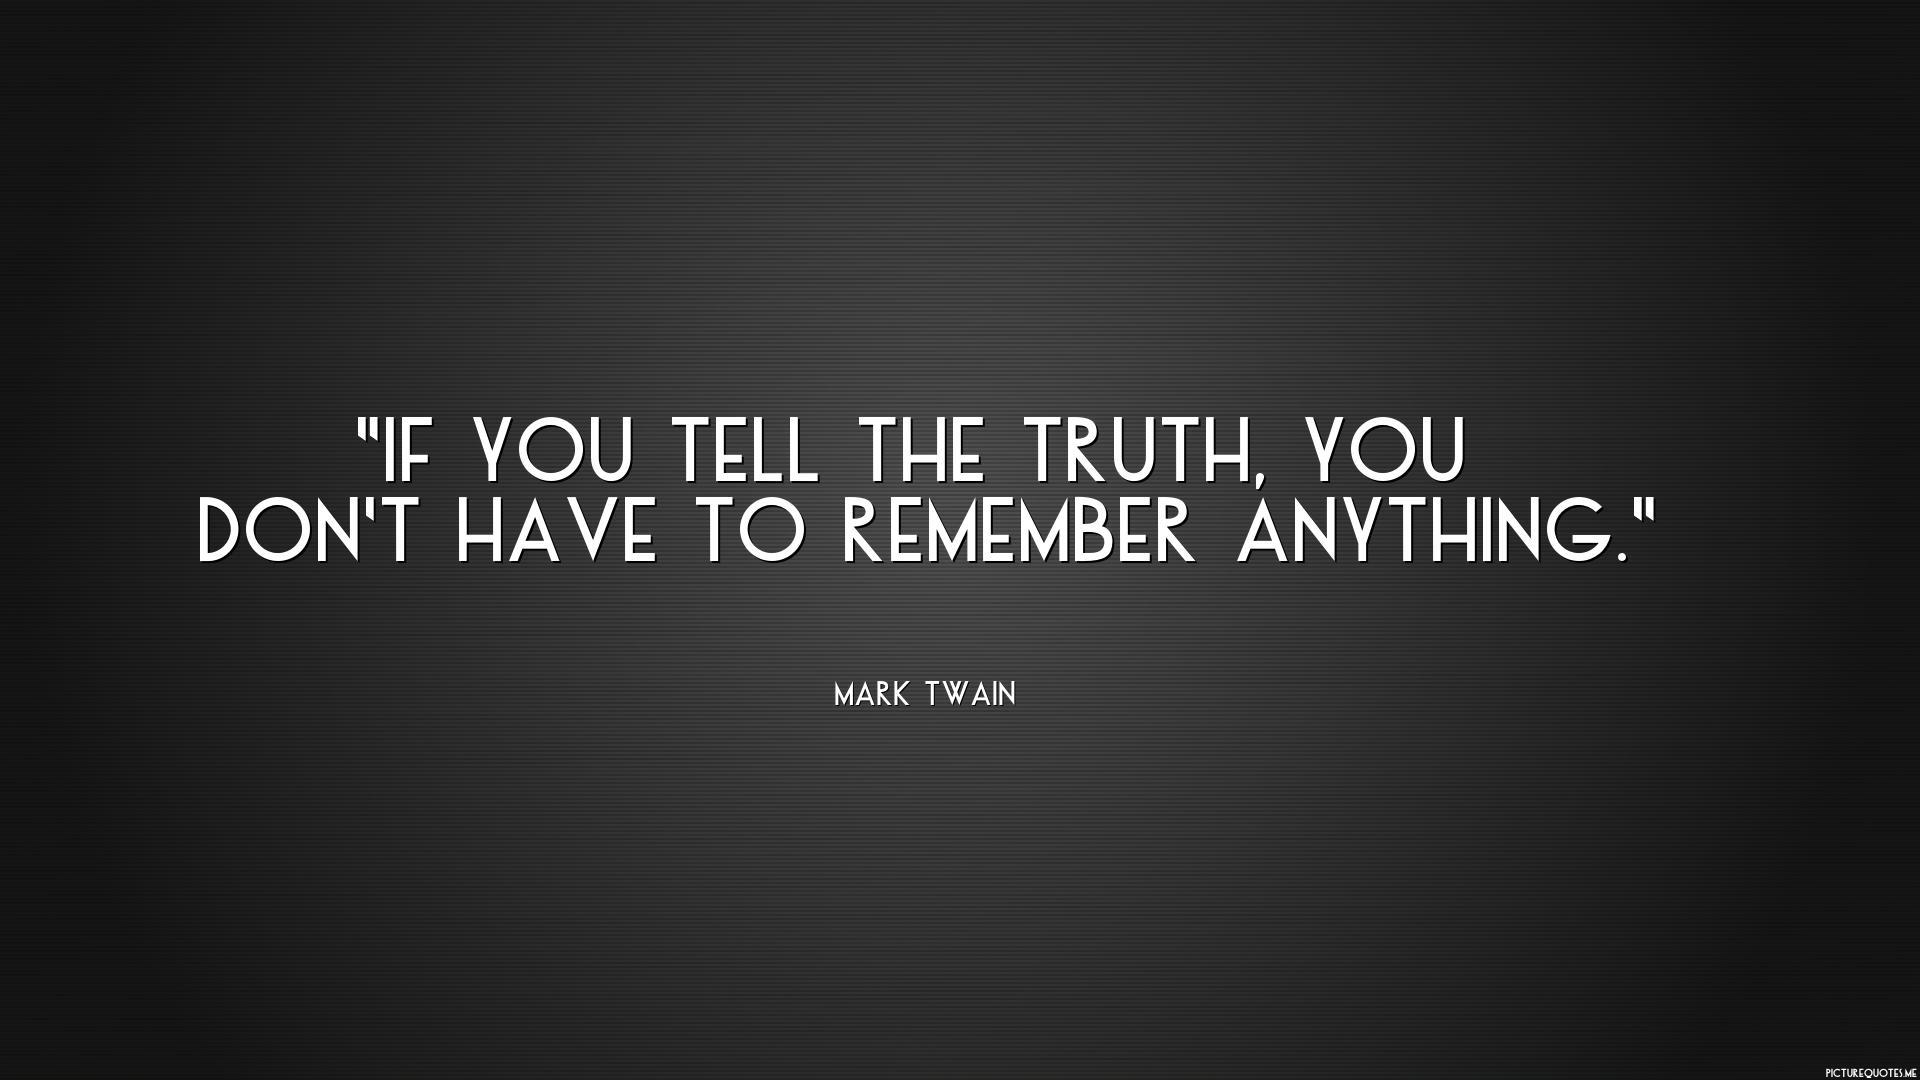 Mark Twain Quotes Mark Twain Quotes  Picturequotes